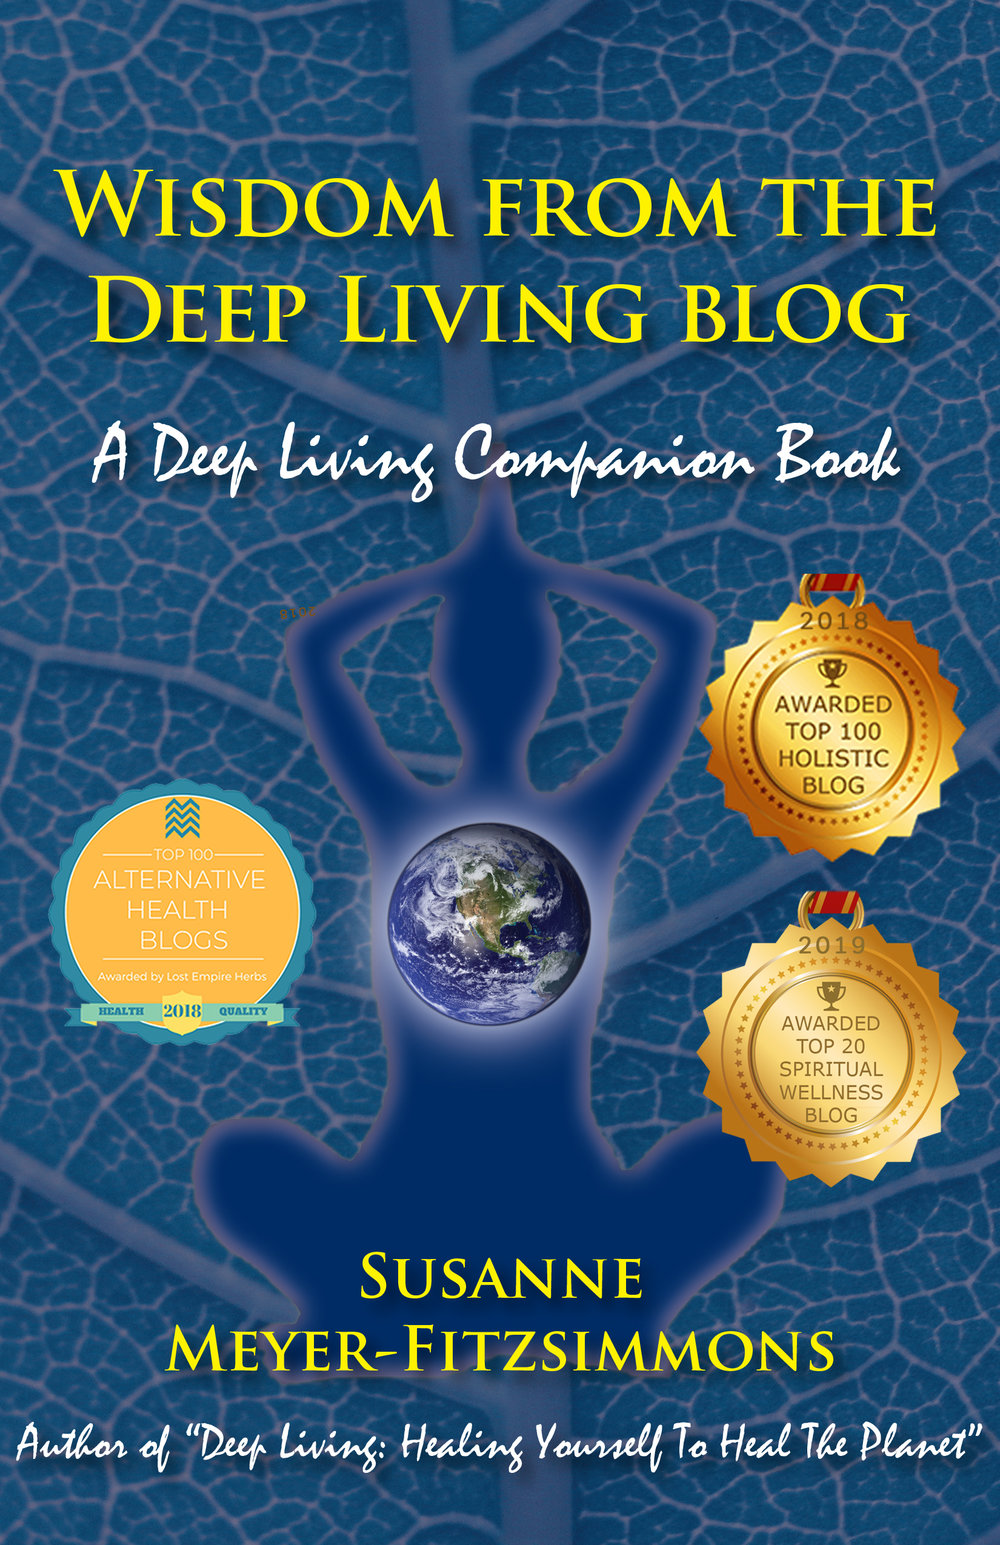 Savoring life, musings on food and how to grow it sustainably, reflections on the present cultural transformation, deep and meaningful living, spiritual meanderings, thoughts on health and wellness, answers on how we can heal our planet - Wisdom from the Deep Living Blog is an uplifting collection of the best inspirational blog posts from almost six years of blogging on deep living, and a companion book to Deep Living: Healing Yourself To Heal The Planet. -